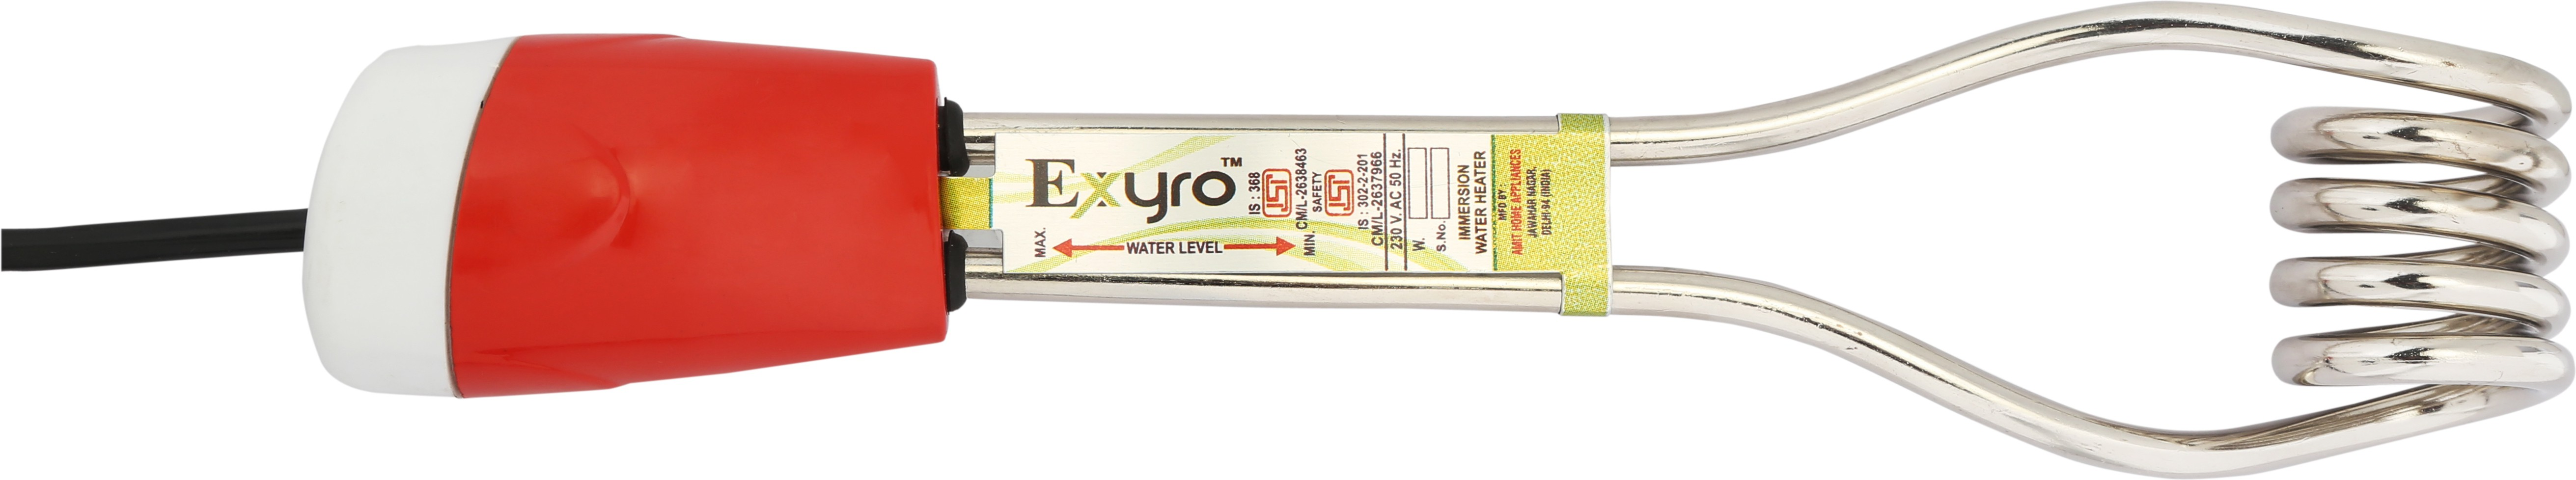 Exyro Waterproof 1500 W Immersion Heater Rod(Water)